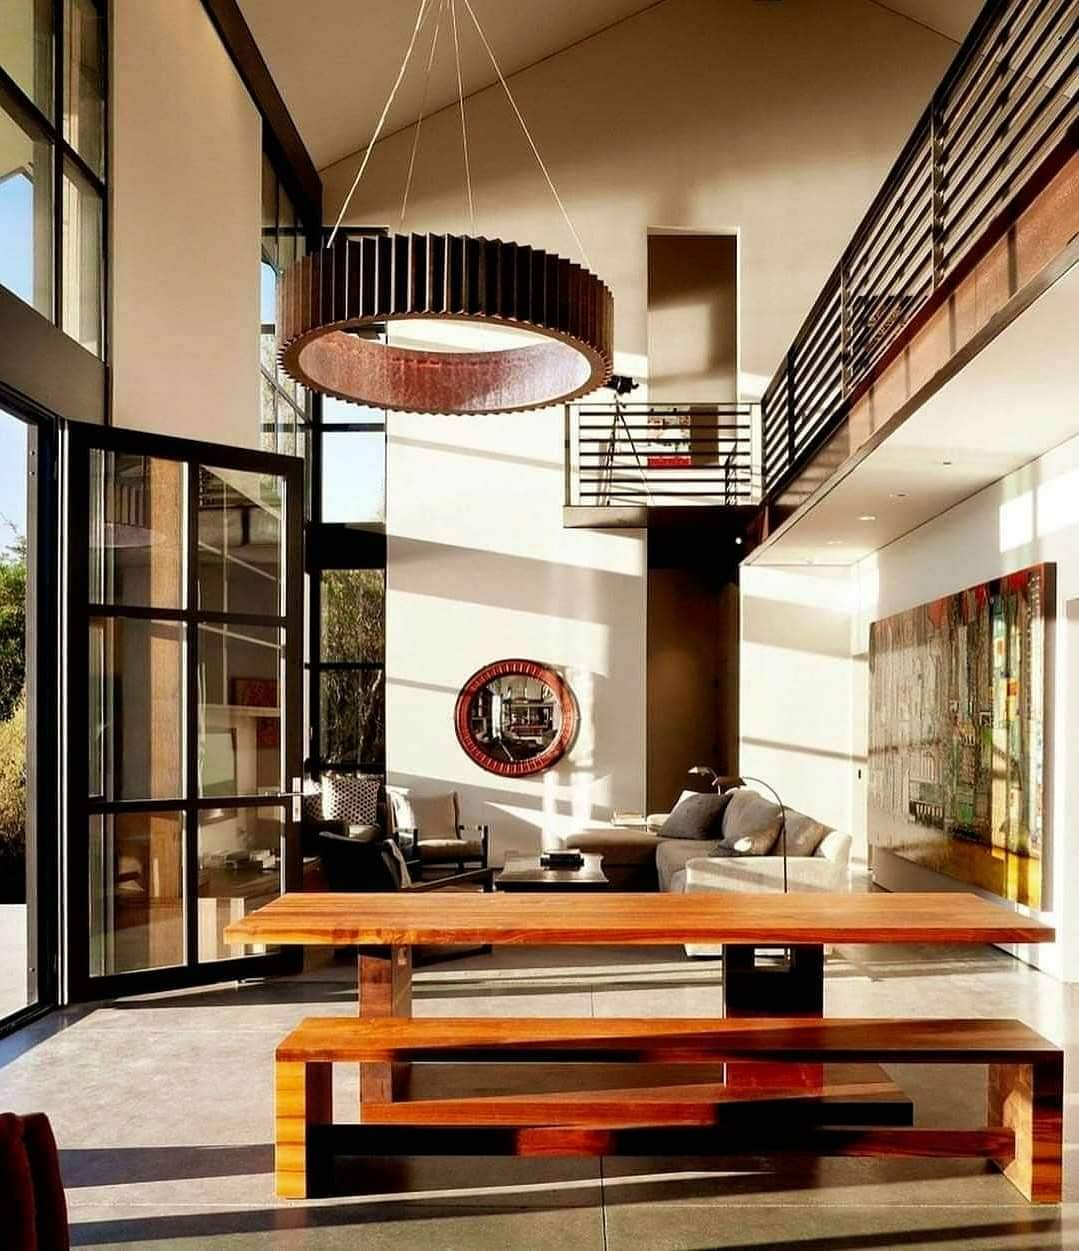 Enchanting Interior look - Source: Olson Kundig